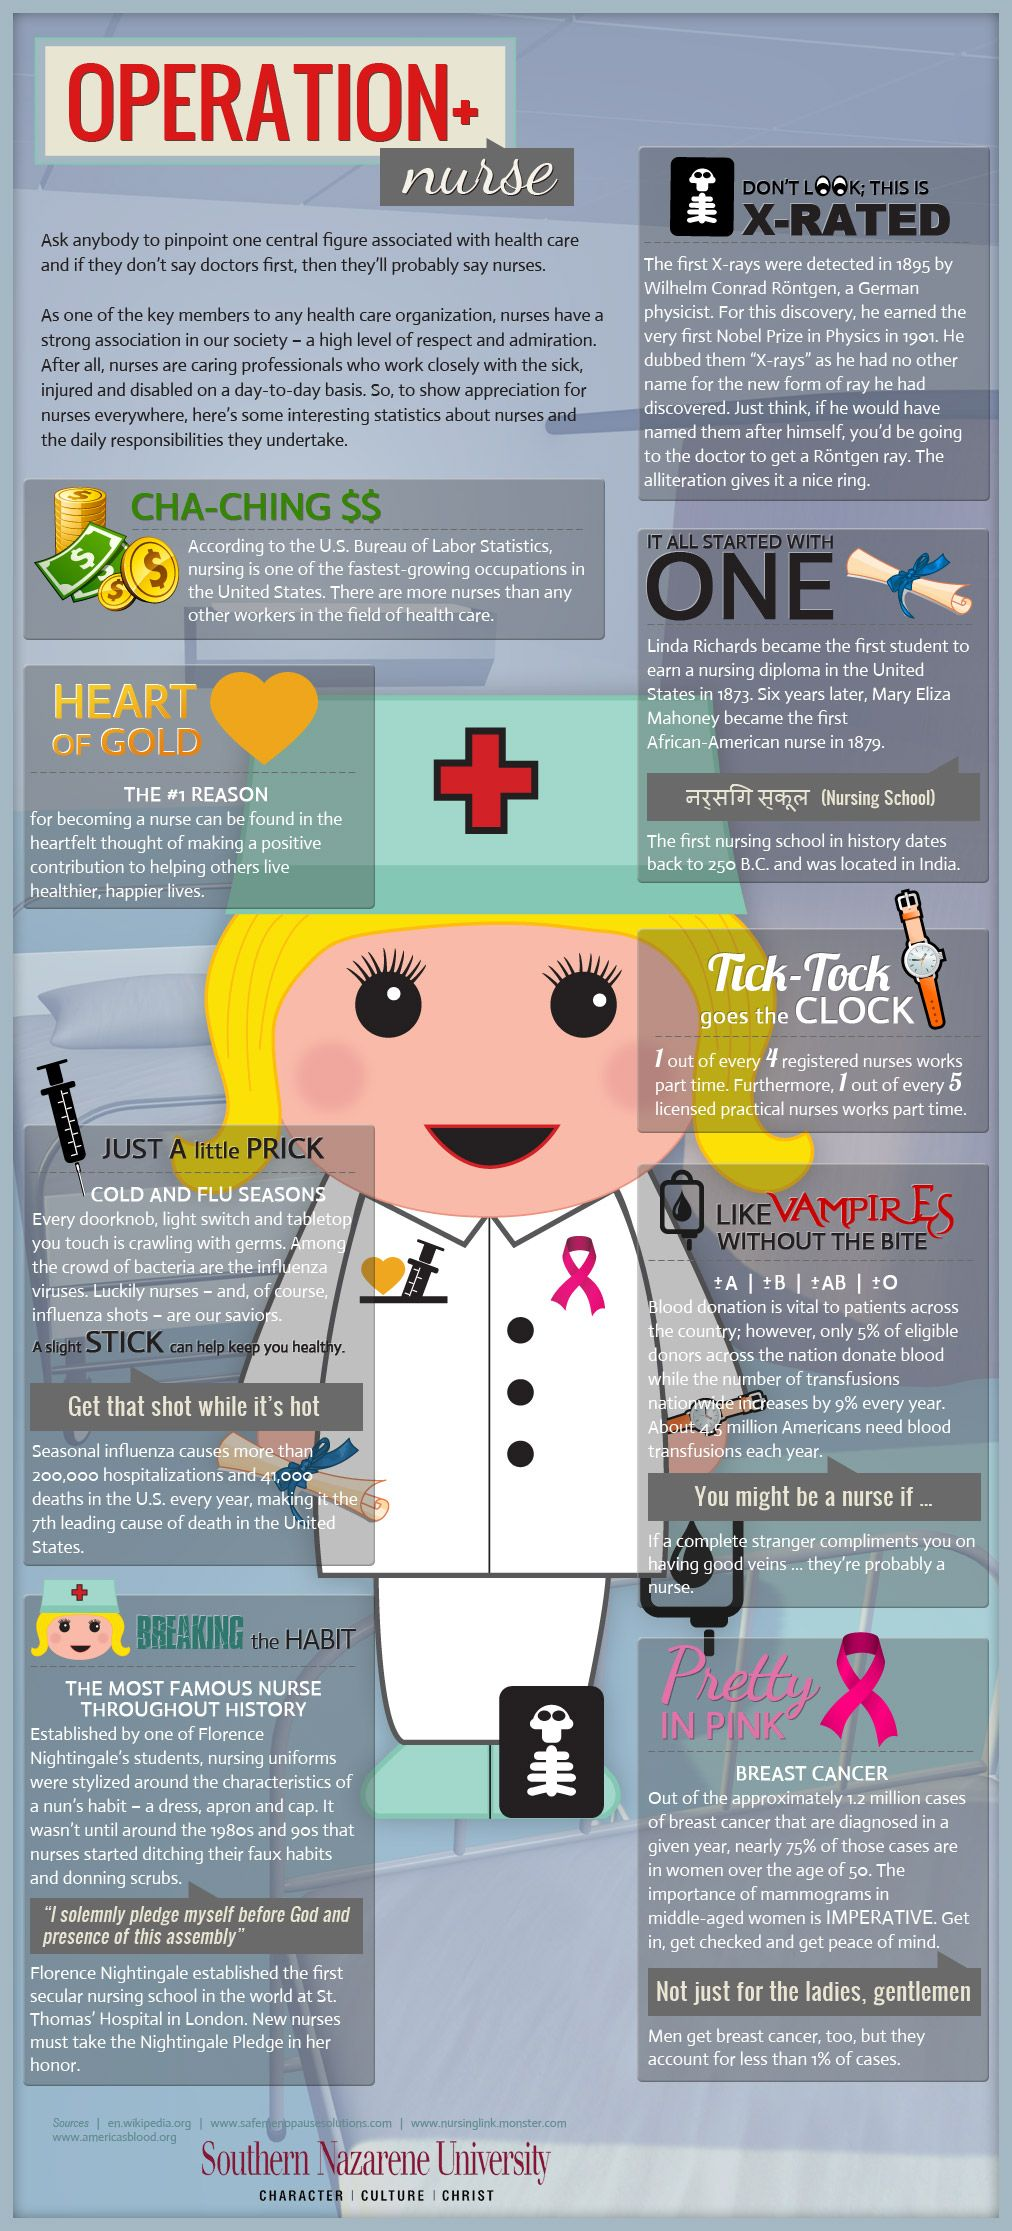 Nurses are one of the most influential roles in the